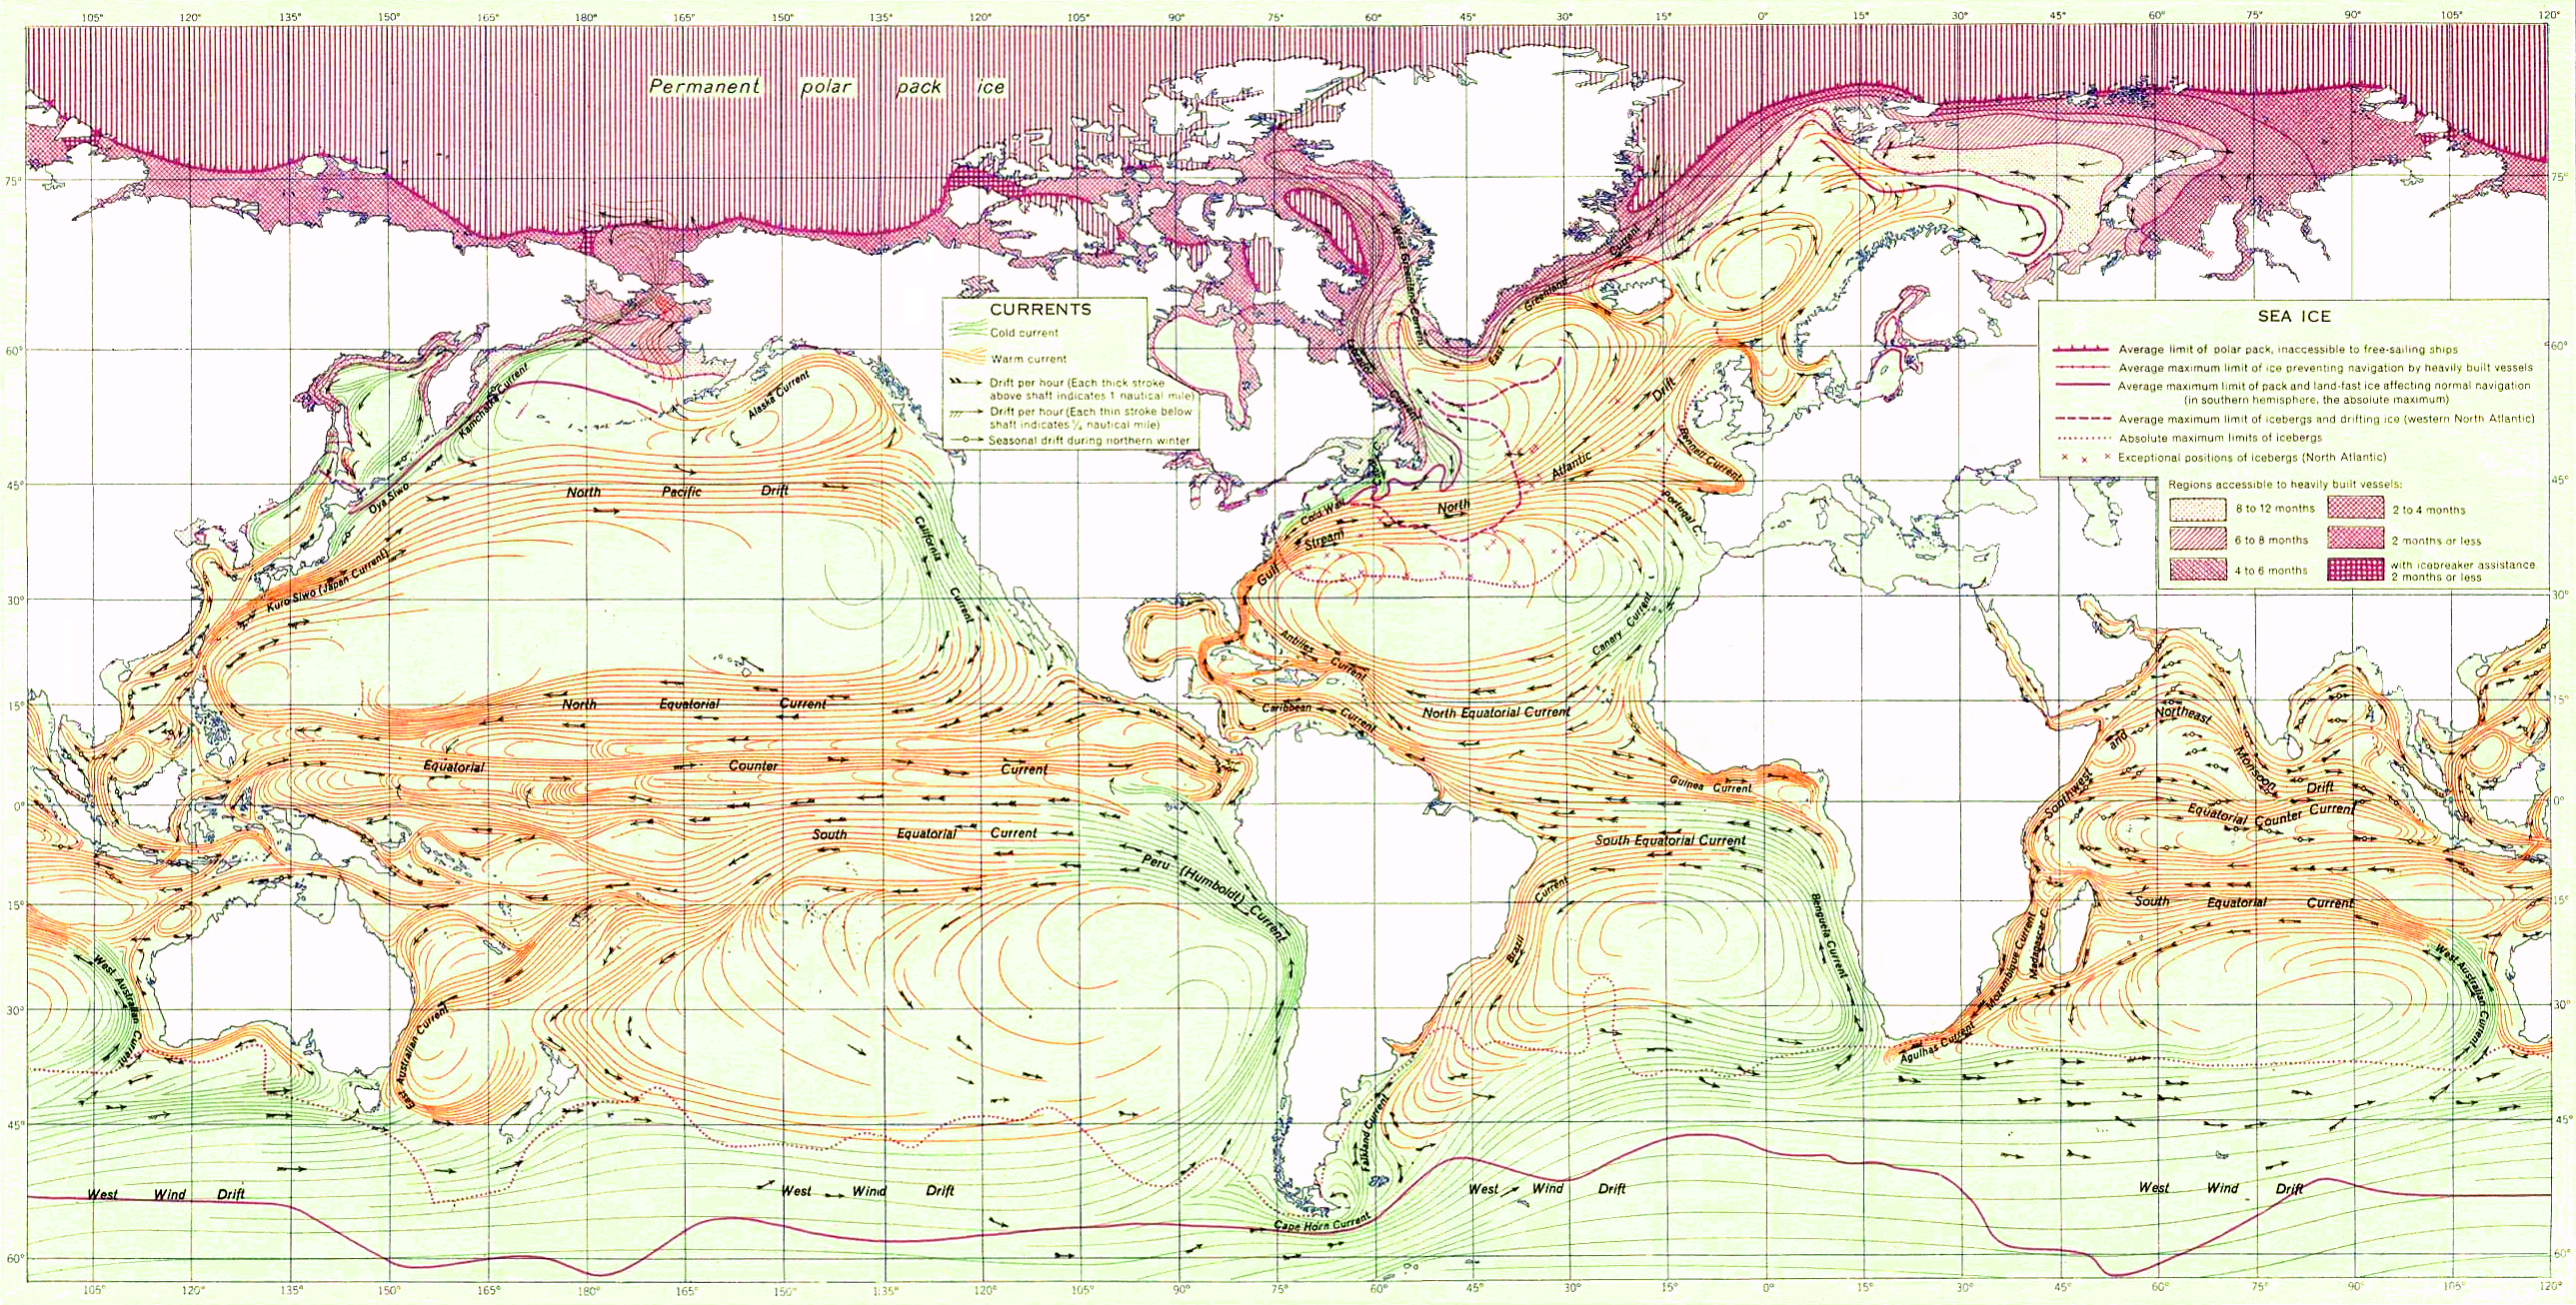 Fileocean currents 1943 borderless3g wikipedia fileocean currents 1943 borderless3g gumiabroncs Choice Image